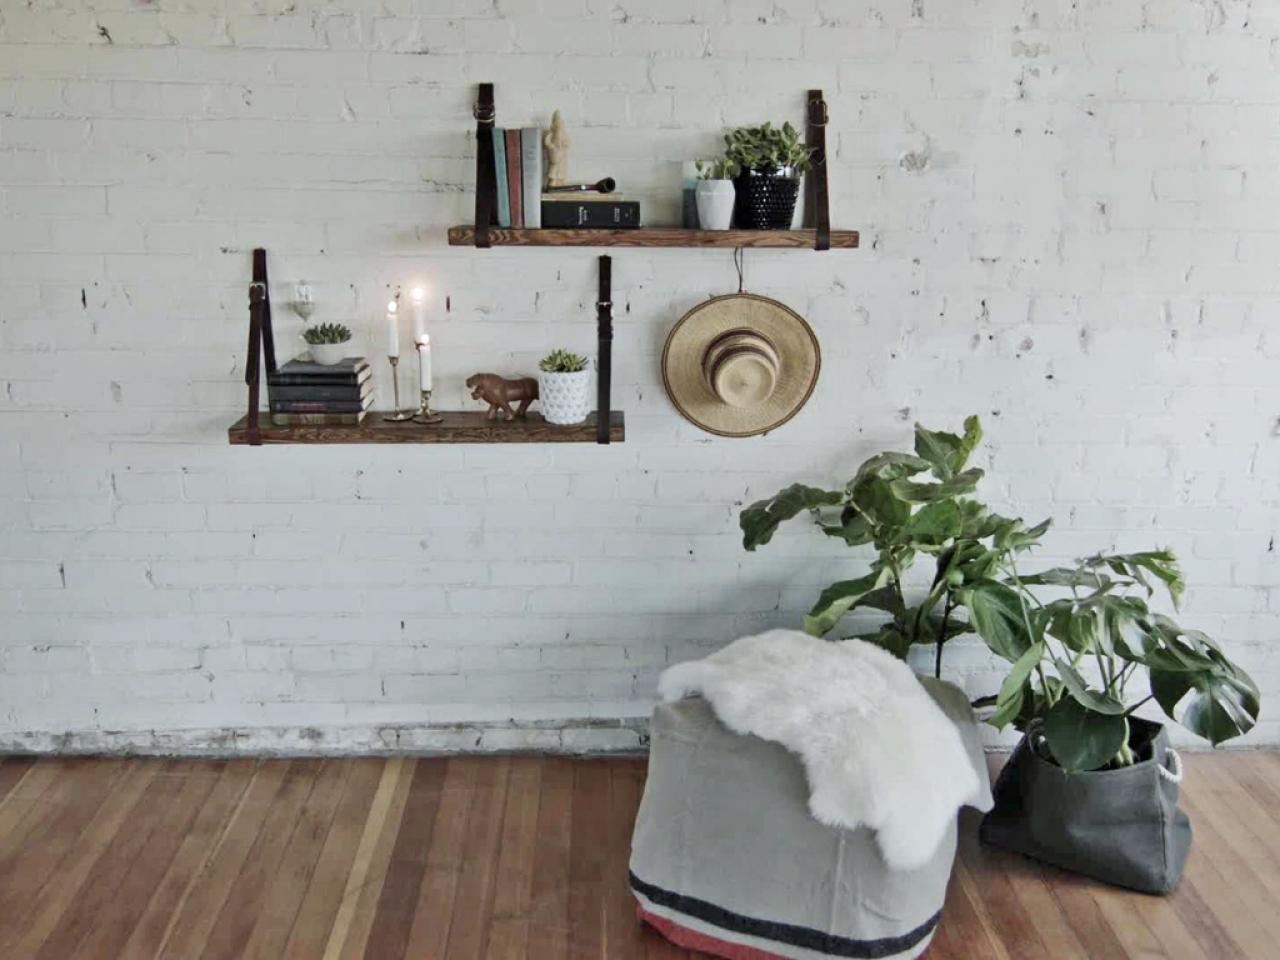 ways decorate with floating shelves decorating kitchen made from old belts concealed shelf hardware brackets bracketless ikea black wall unit stand alone coat hanger gun safe